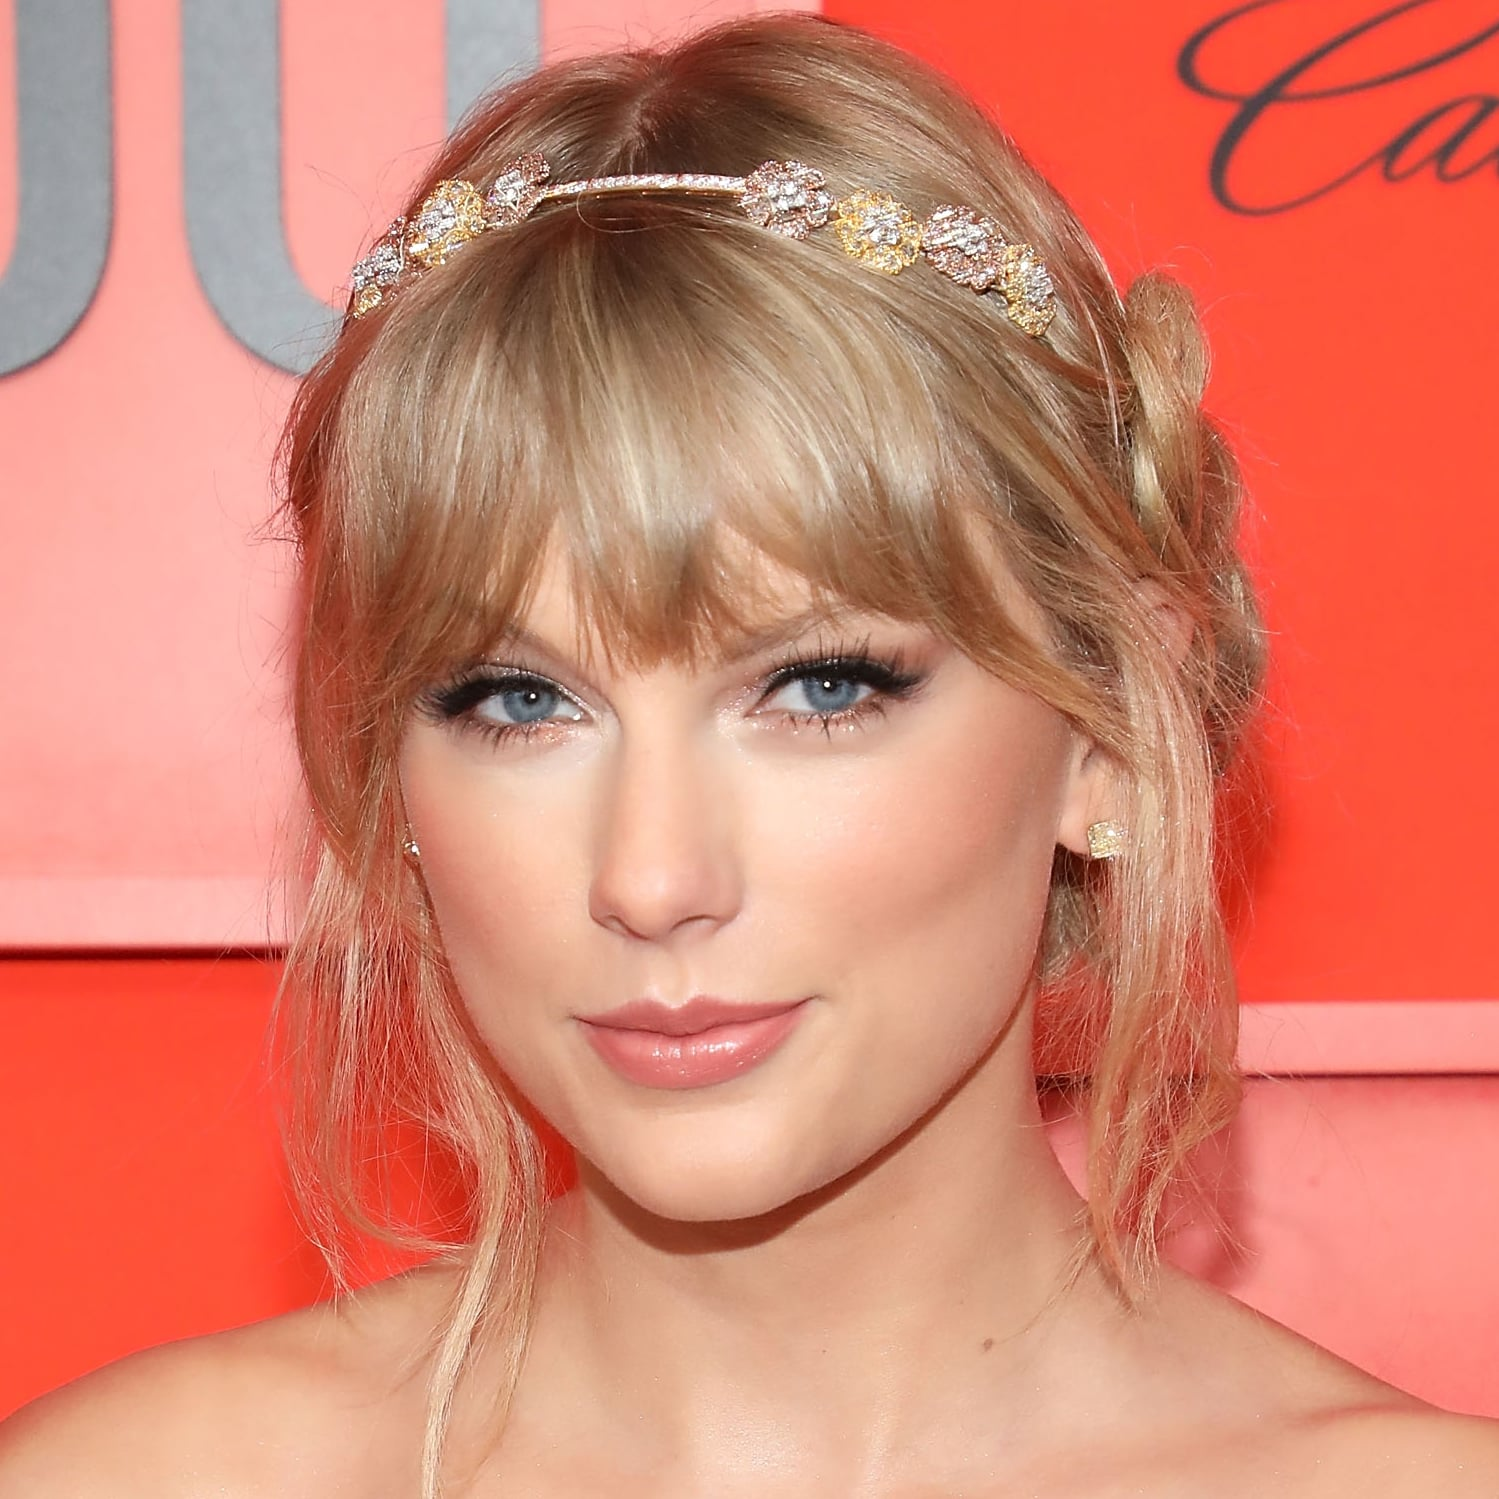 taylor-swift-is-allowed-to-re-record-her-old-catalog-after-scooter-braun-scandal